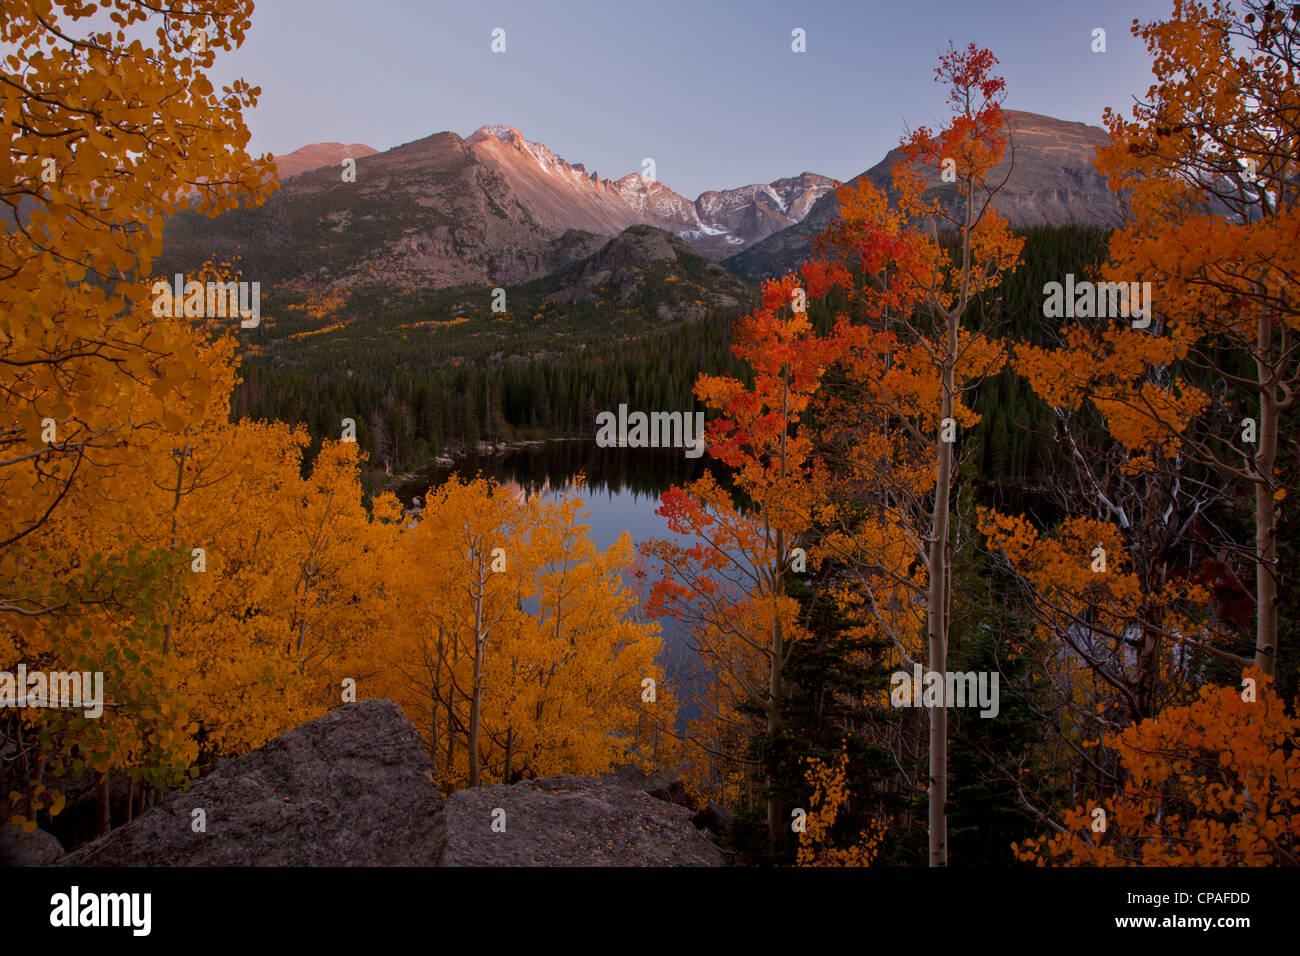 USA, Colorado, Rocky Mountain National Park. Aspen trees in autumn foliage   frame Longs Peak above Bear Lake at - Stock Image